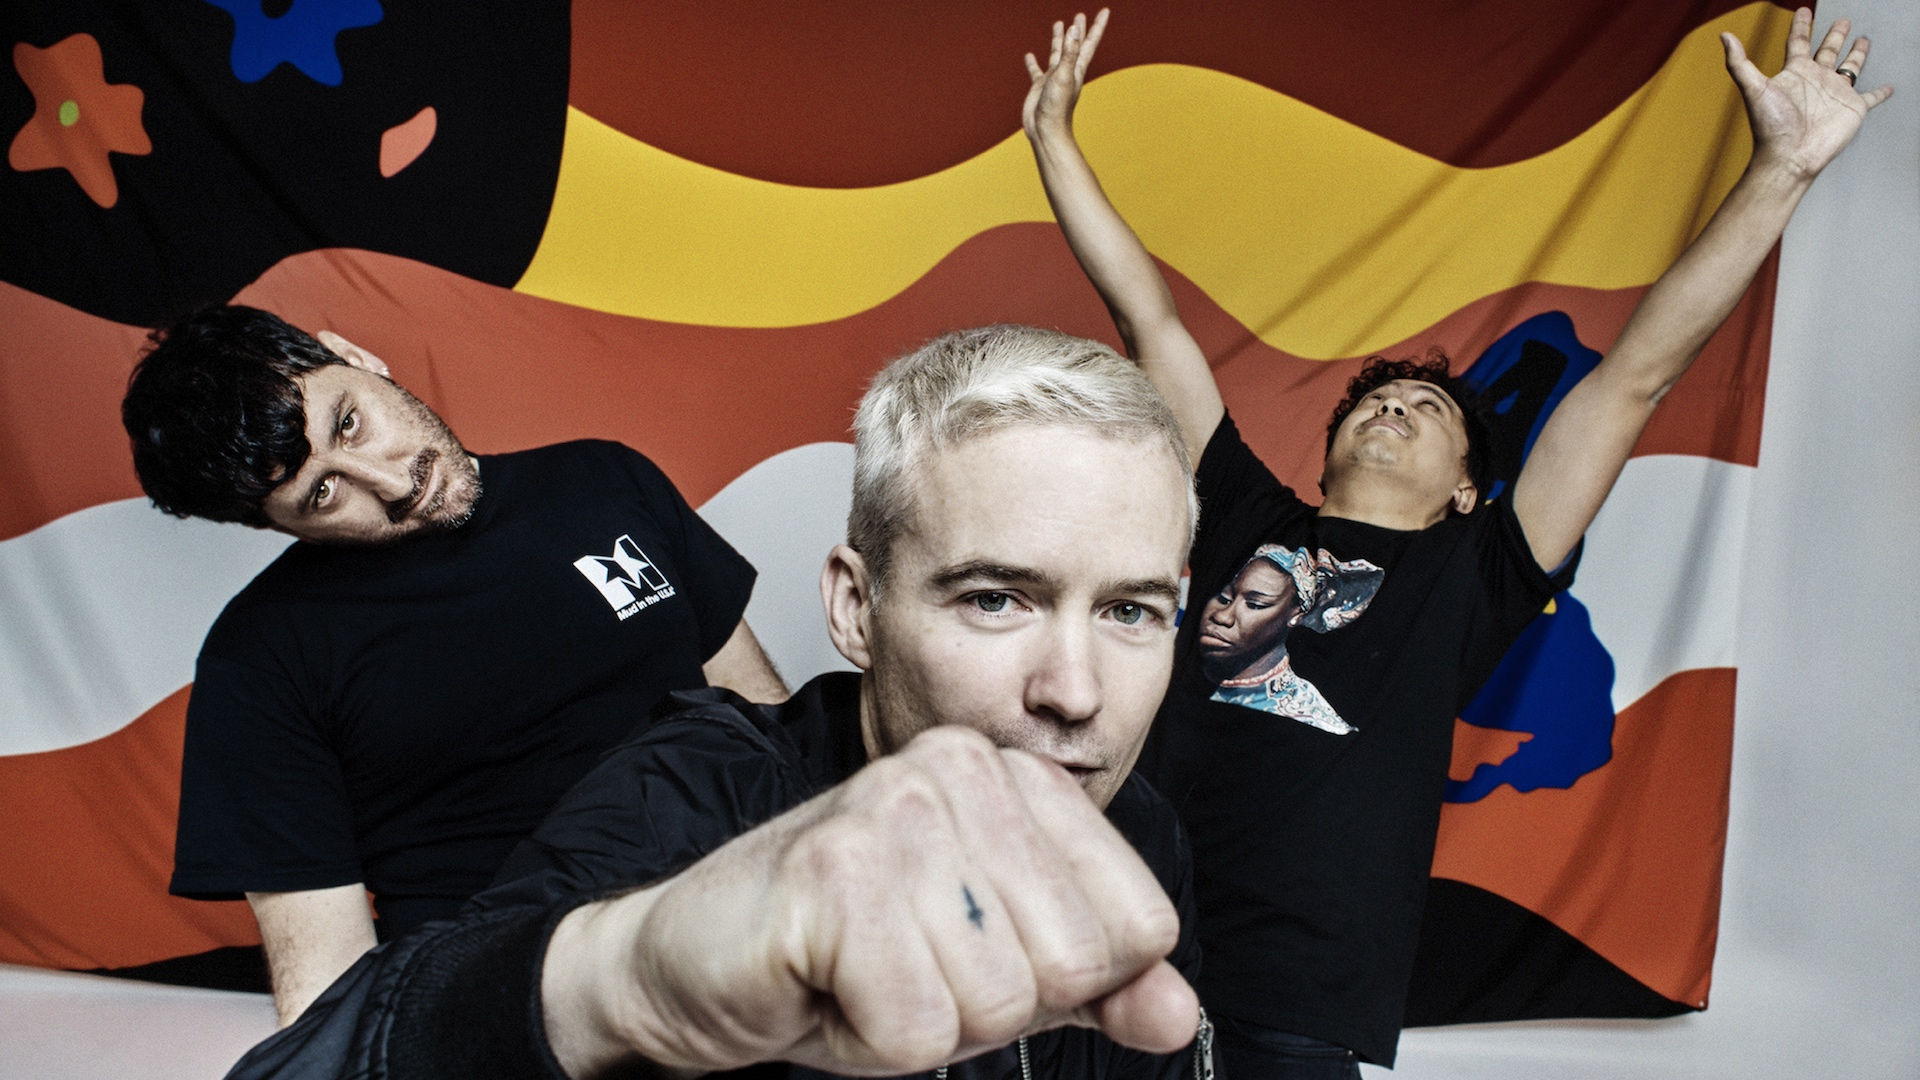 The Avalanches confirmados no NOS Alive'17